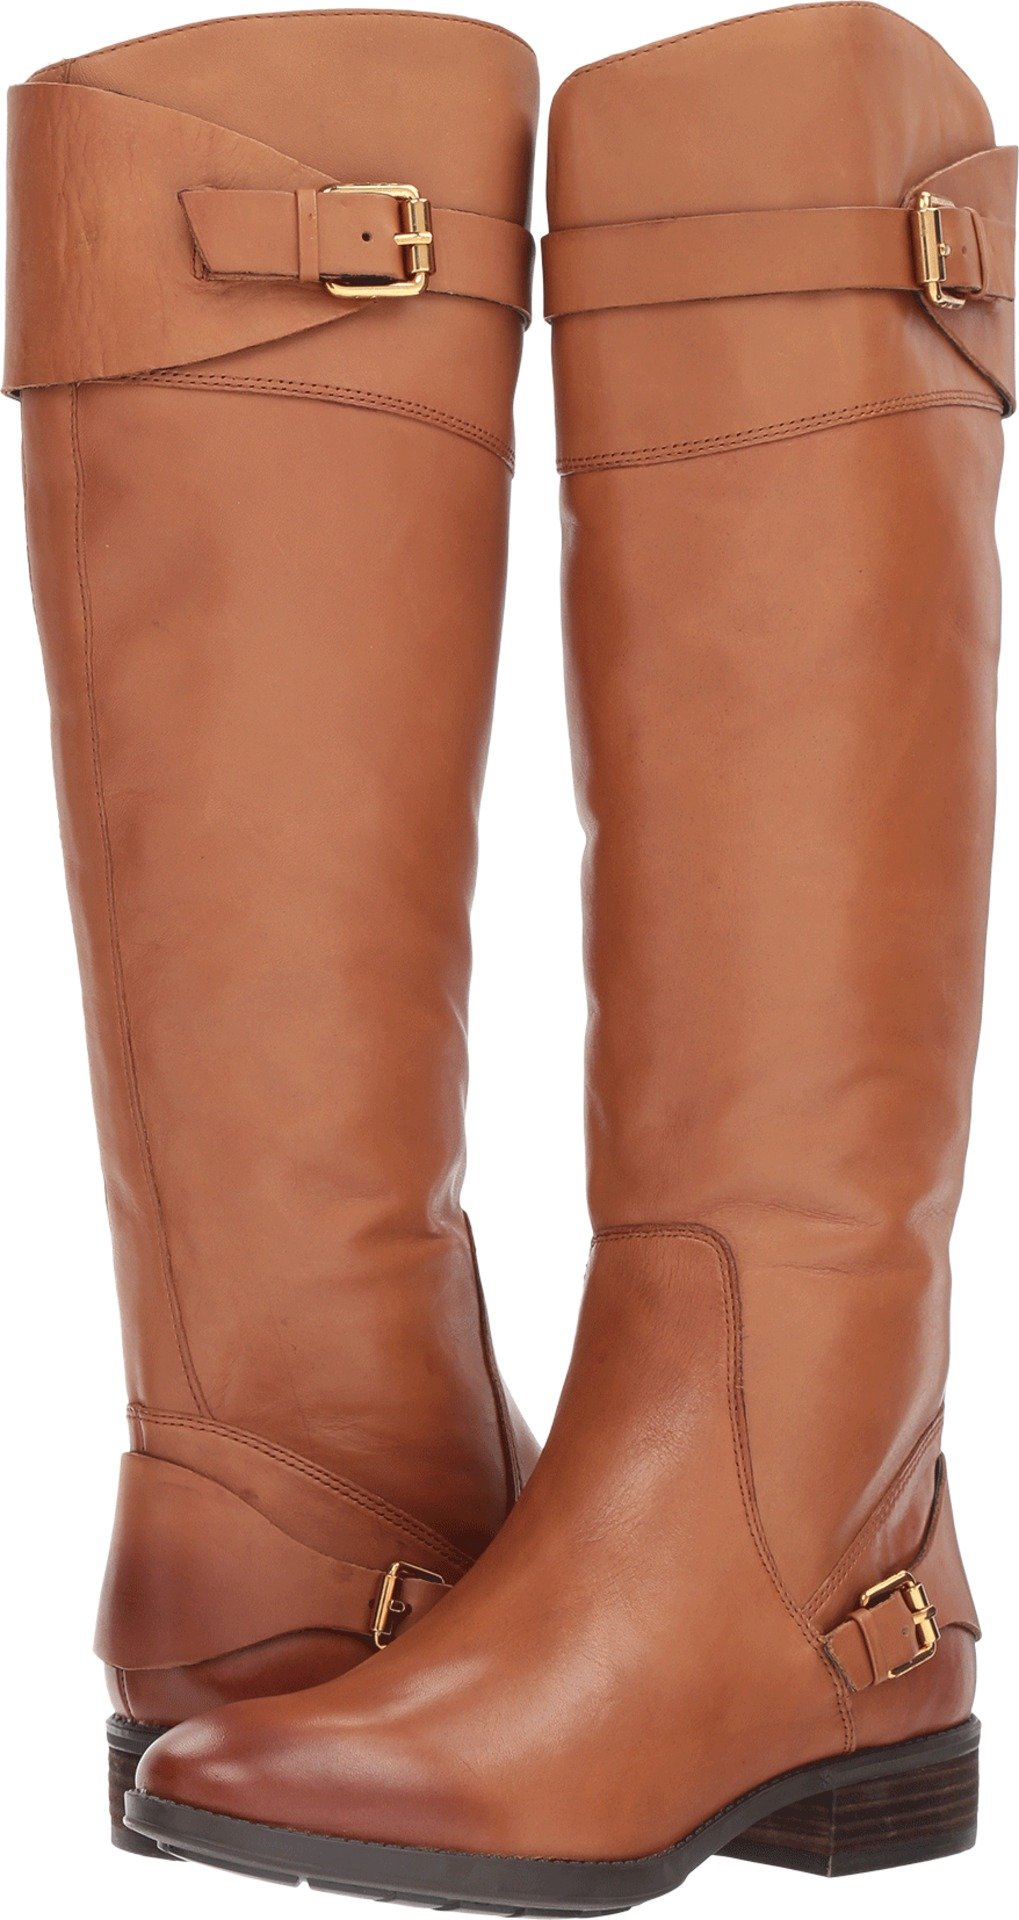 Sam Edelman Women's Portman Knee High Boot, Whiskey, 10.5 Medium US